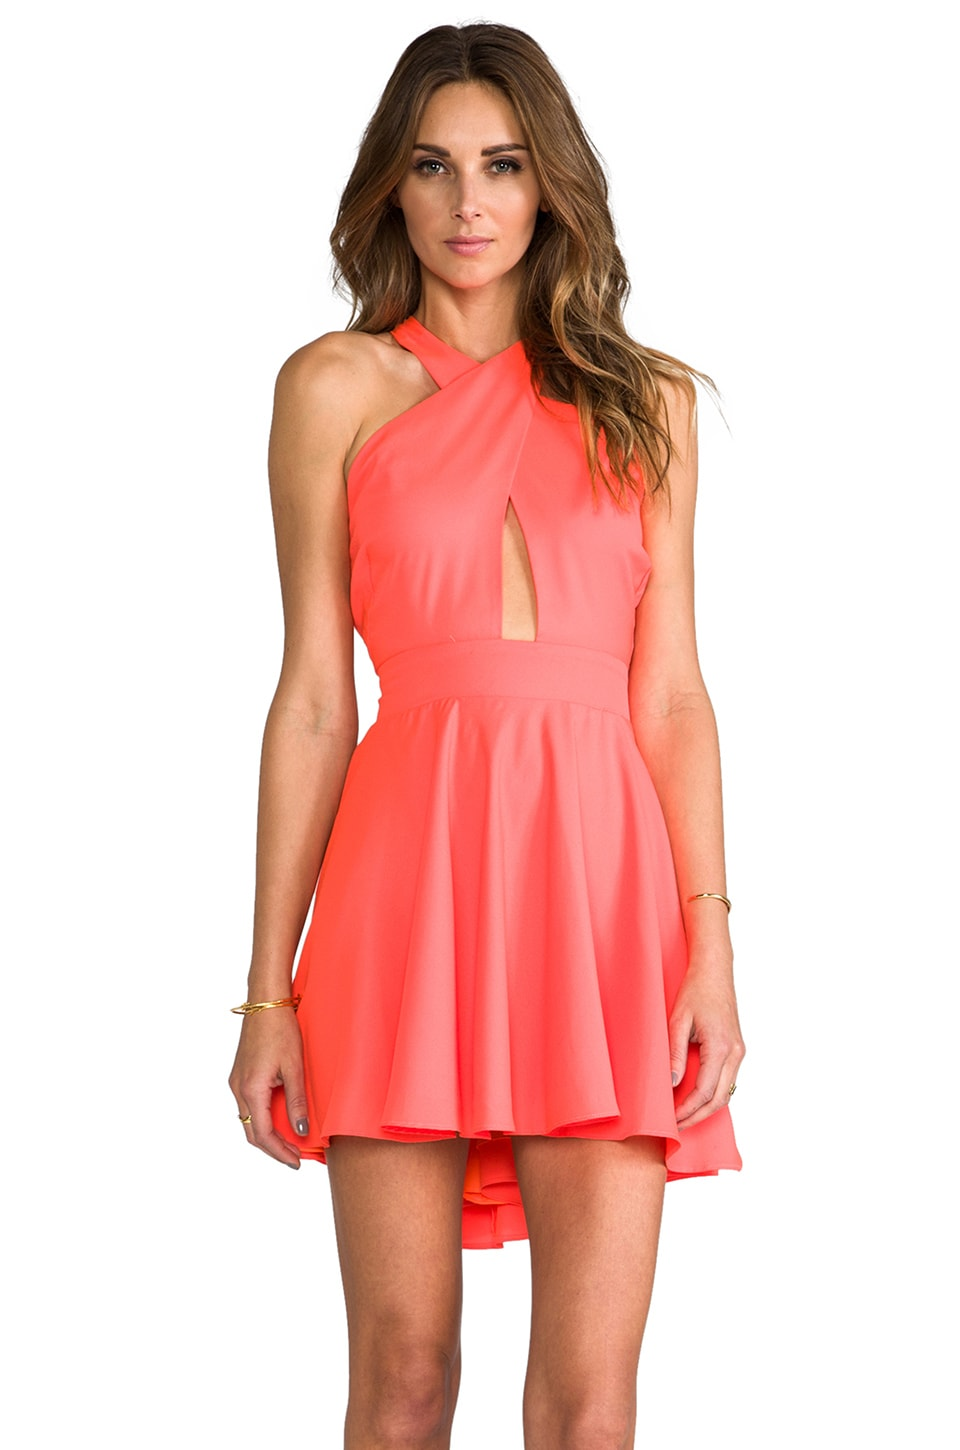 Naven Criss Cross Vixen Dress in Neon Peach